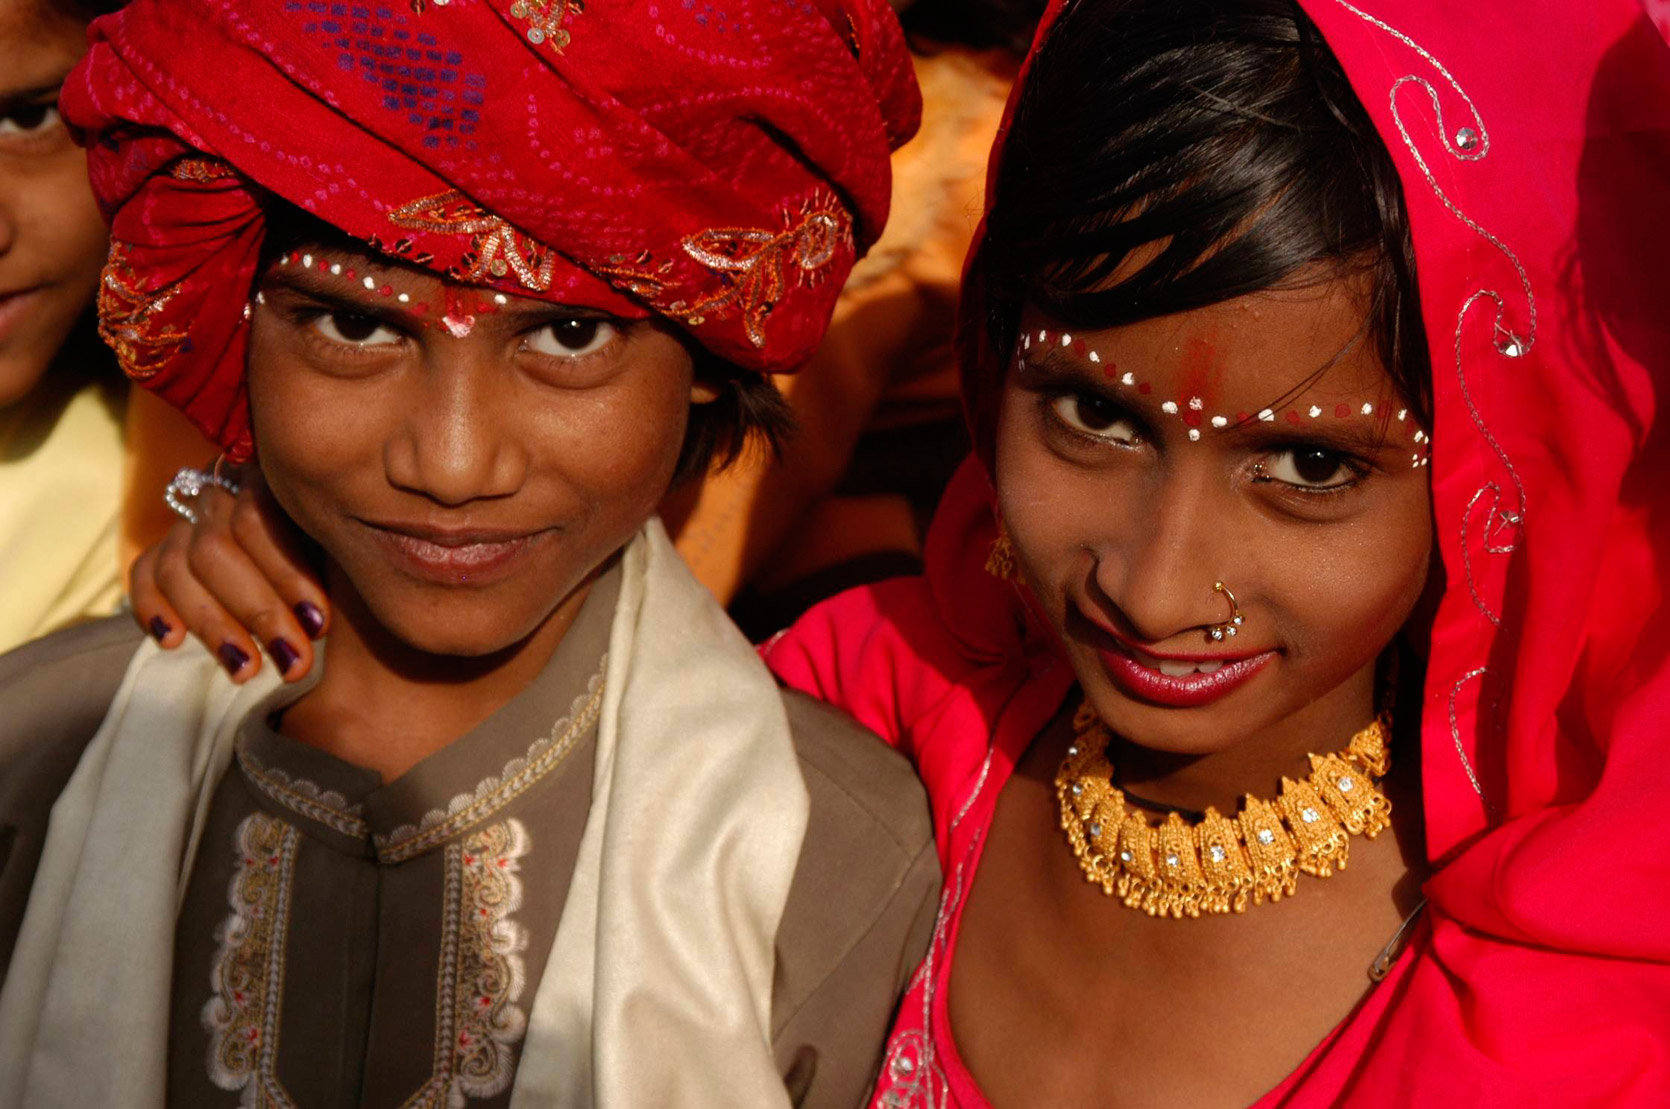 Boy and girl dressed up for Sheetlamata festival, Jaipur